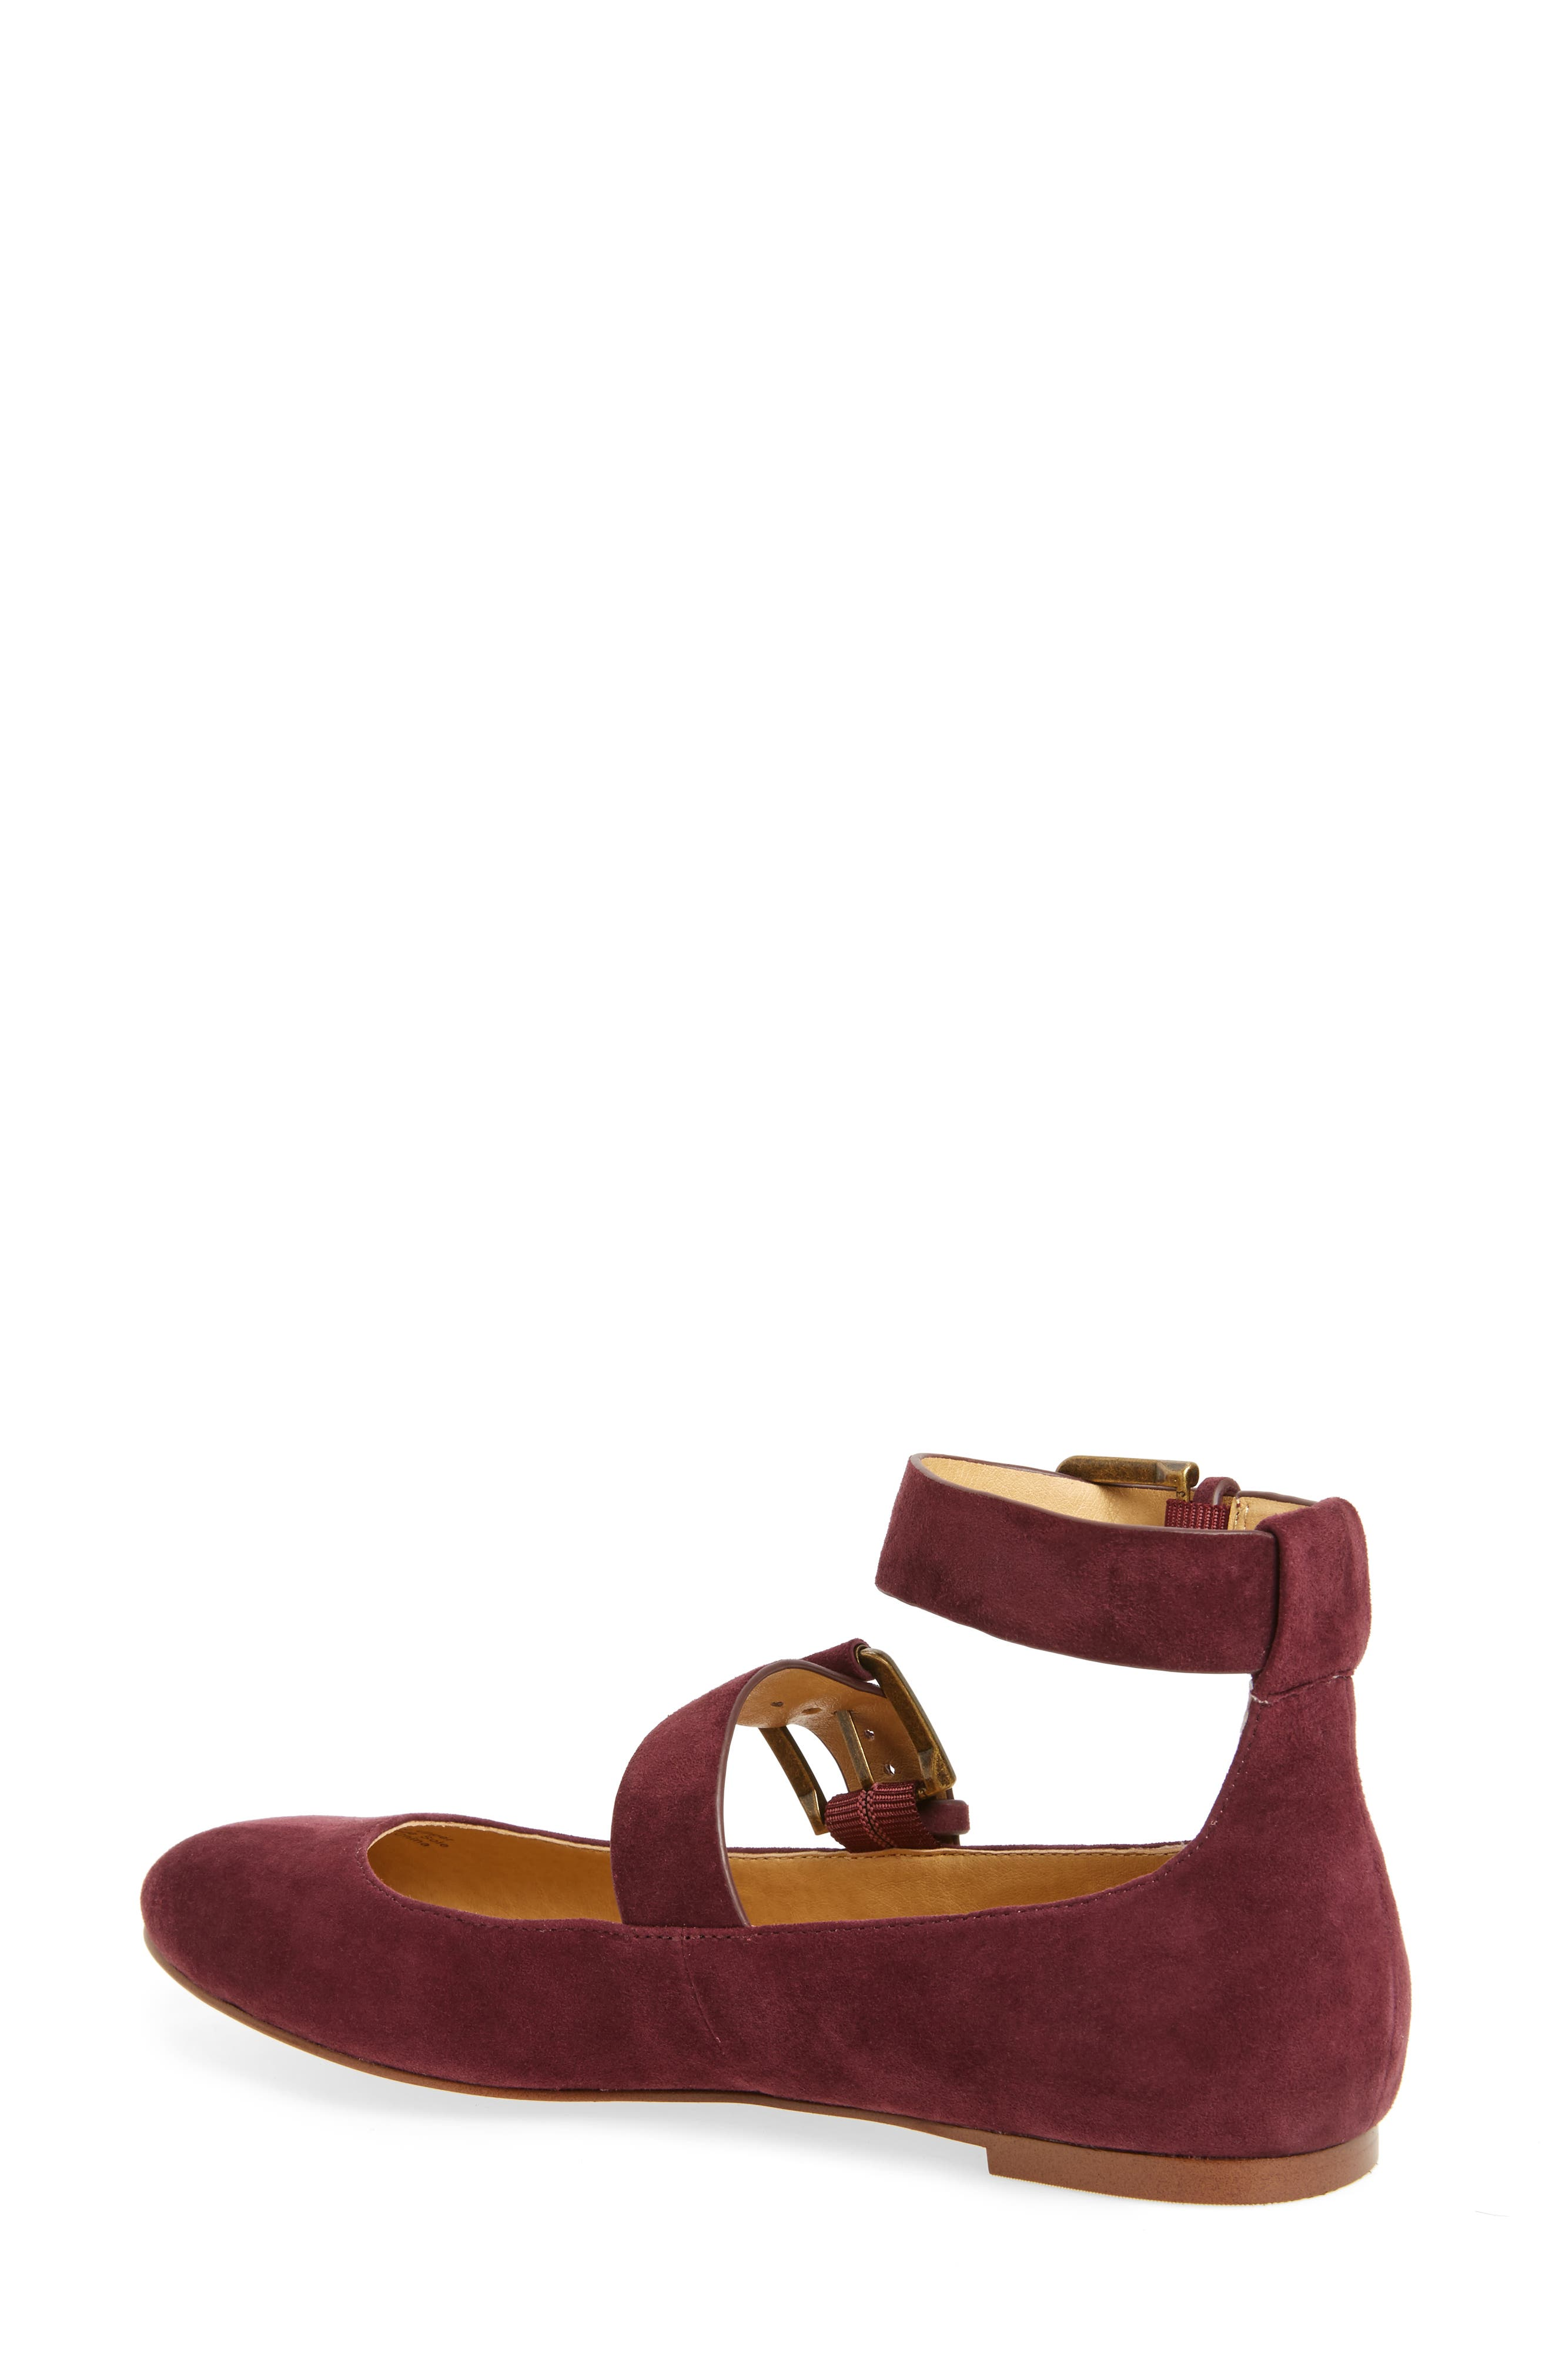 Dalenna Ankle Strap Ballet Flat,                             Alternate thumbnail 6, color,